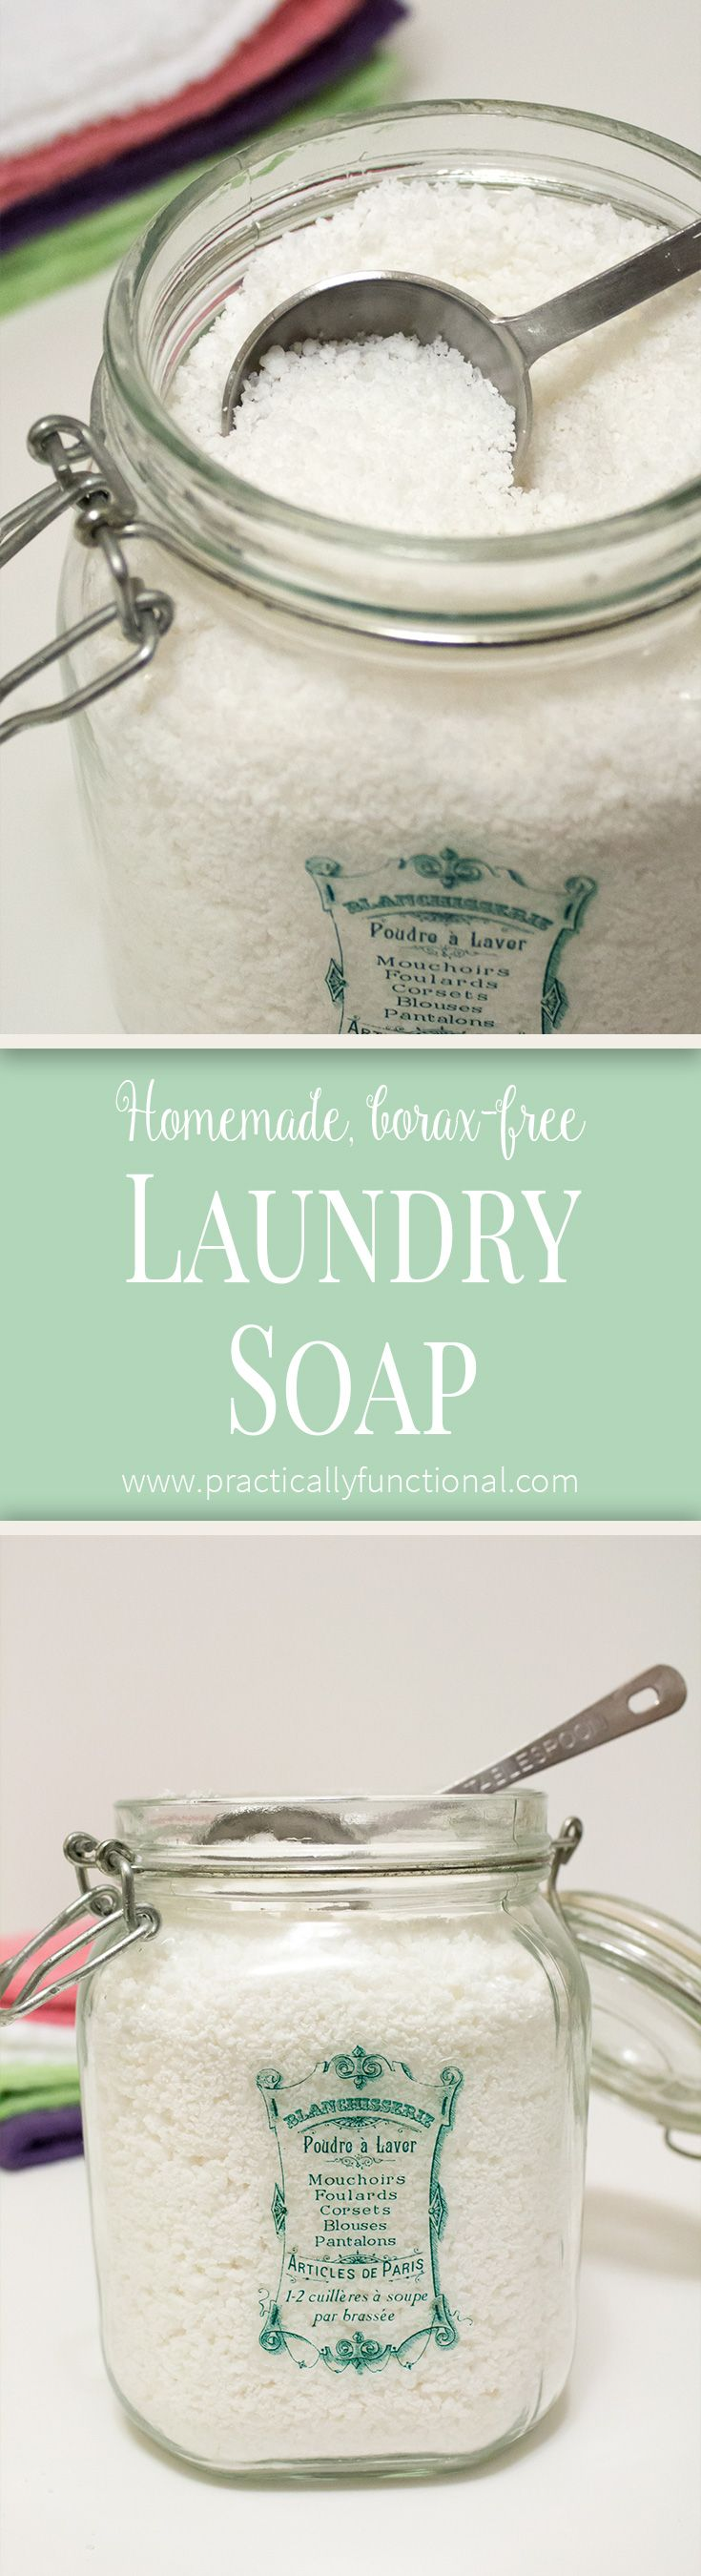 This homemade laundry soap is cheaper, non-toxic, and cleans better than commercial laundry soap!